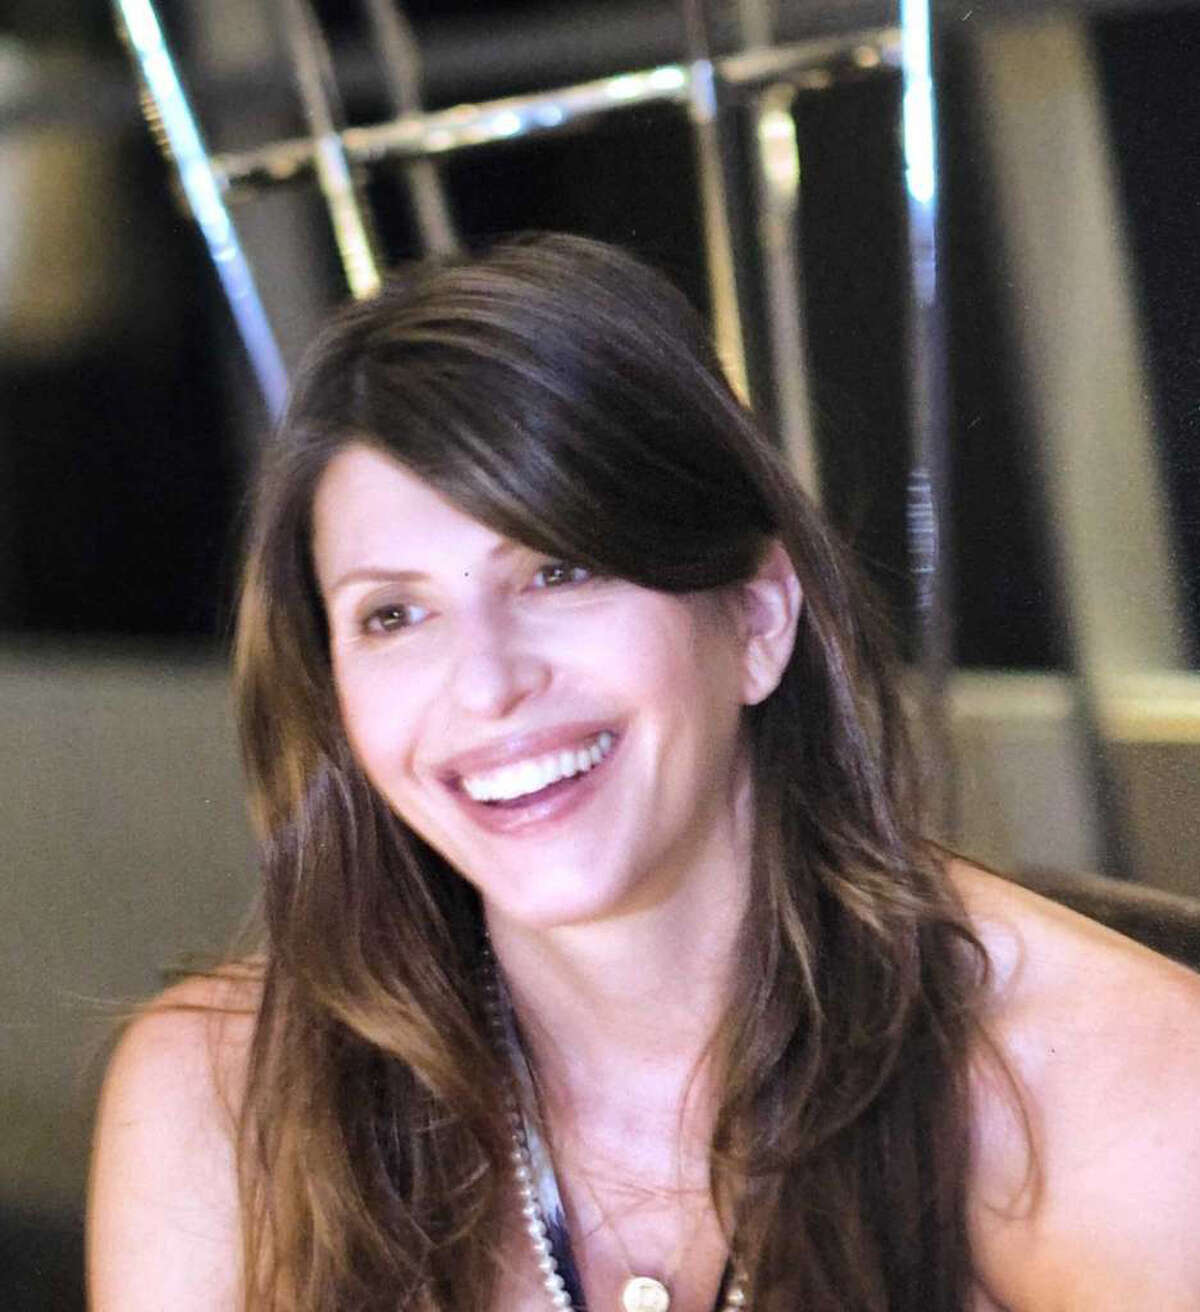 The family of Jennifer Farber Dulos, the 50-year-old New Canaan mother of five missing since May 24, 2019, said they are